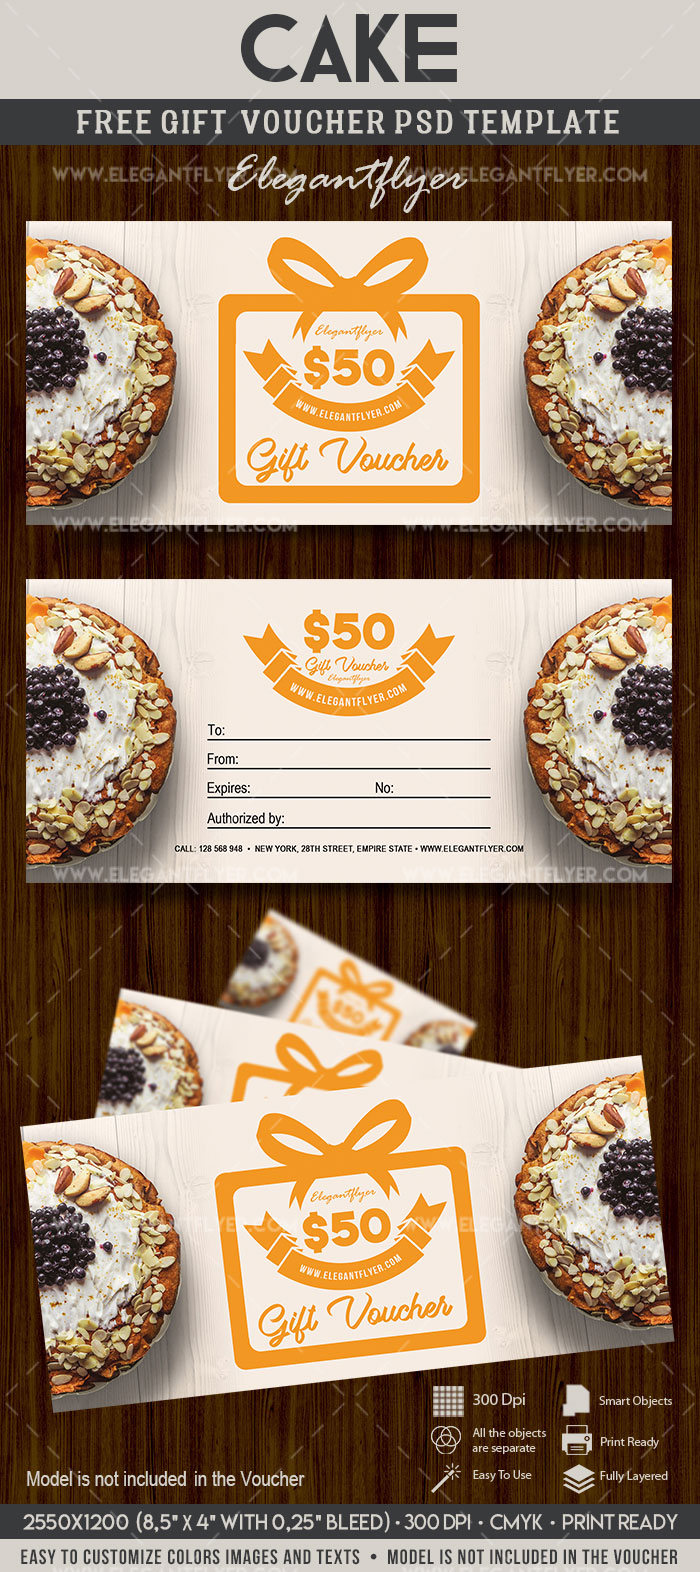 Cake , FREE Gift Certificate PSD Template on Behance